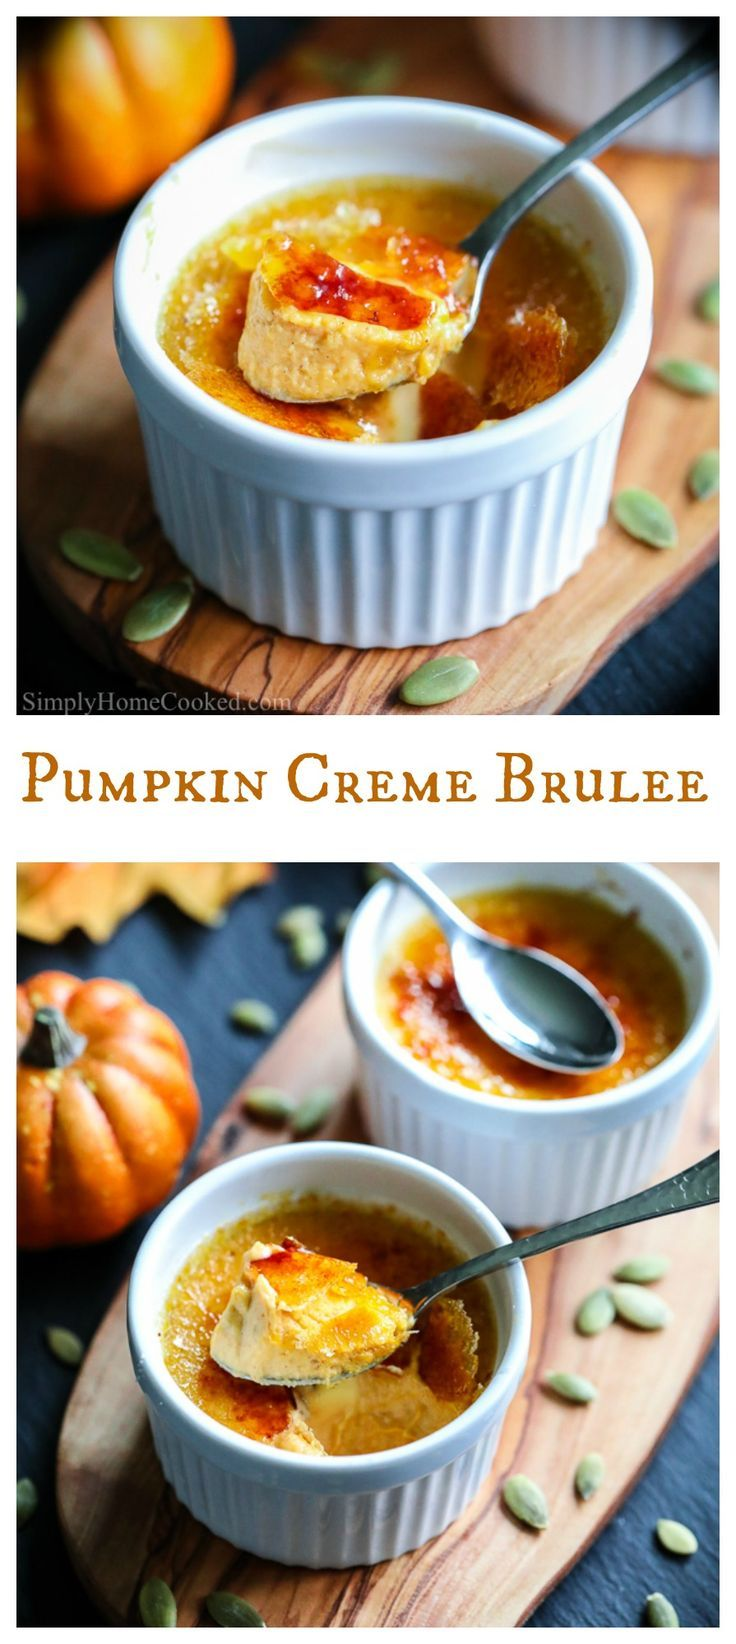 Pumpkin Creme Brulee Recipe - Simply Home Cooked